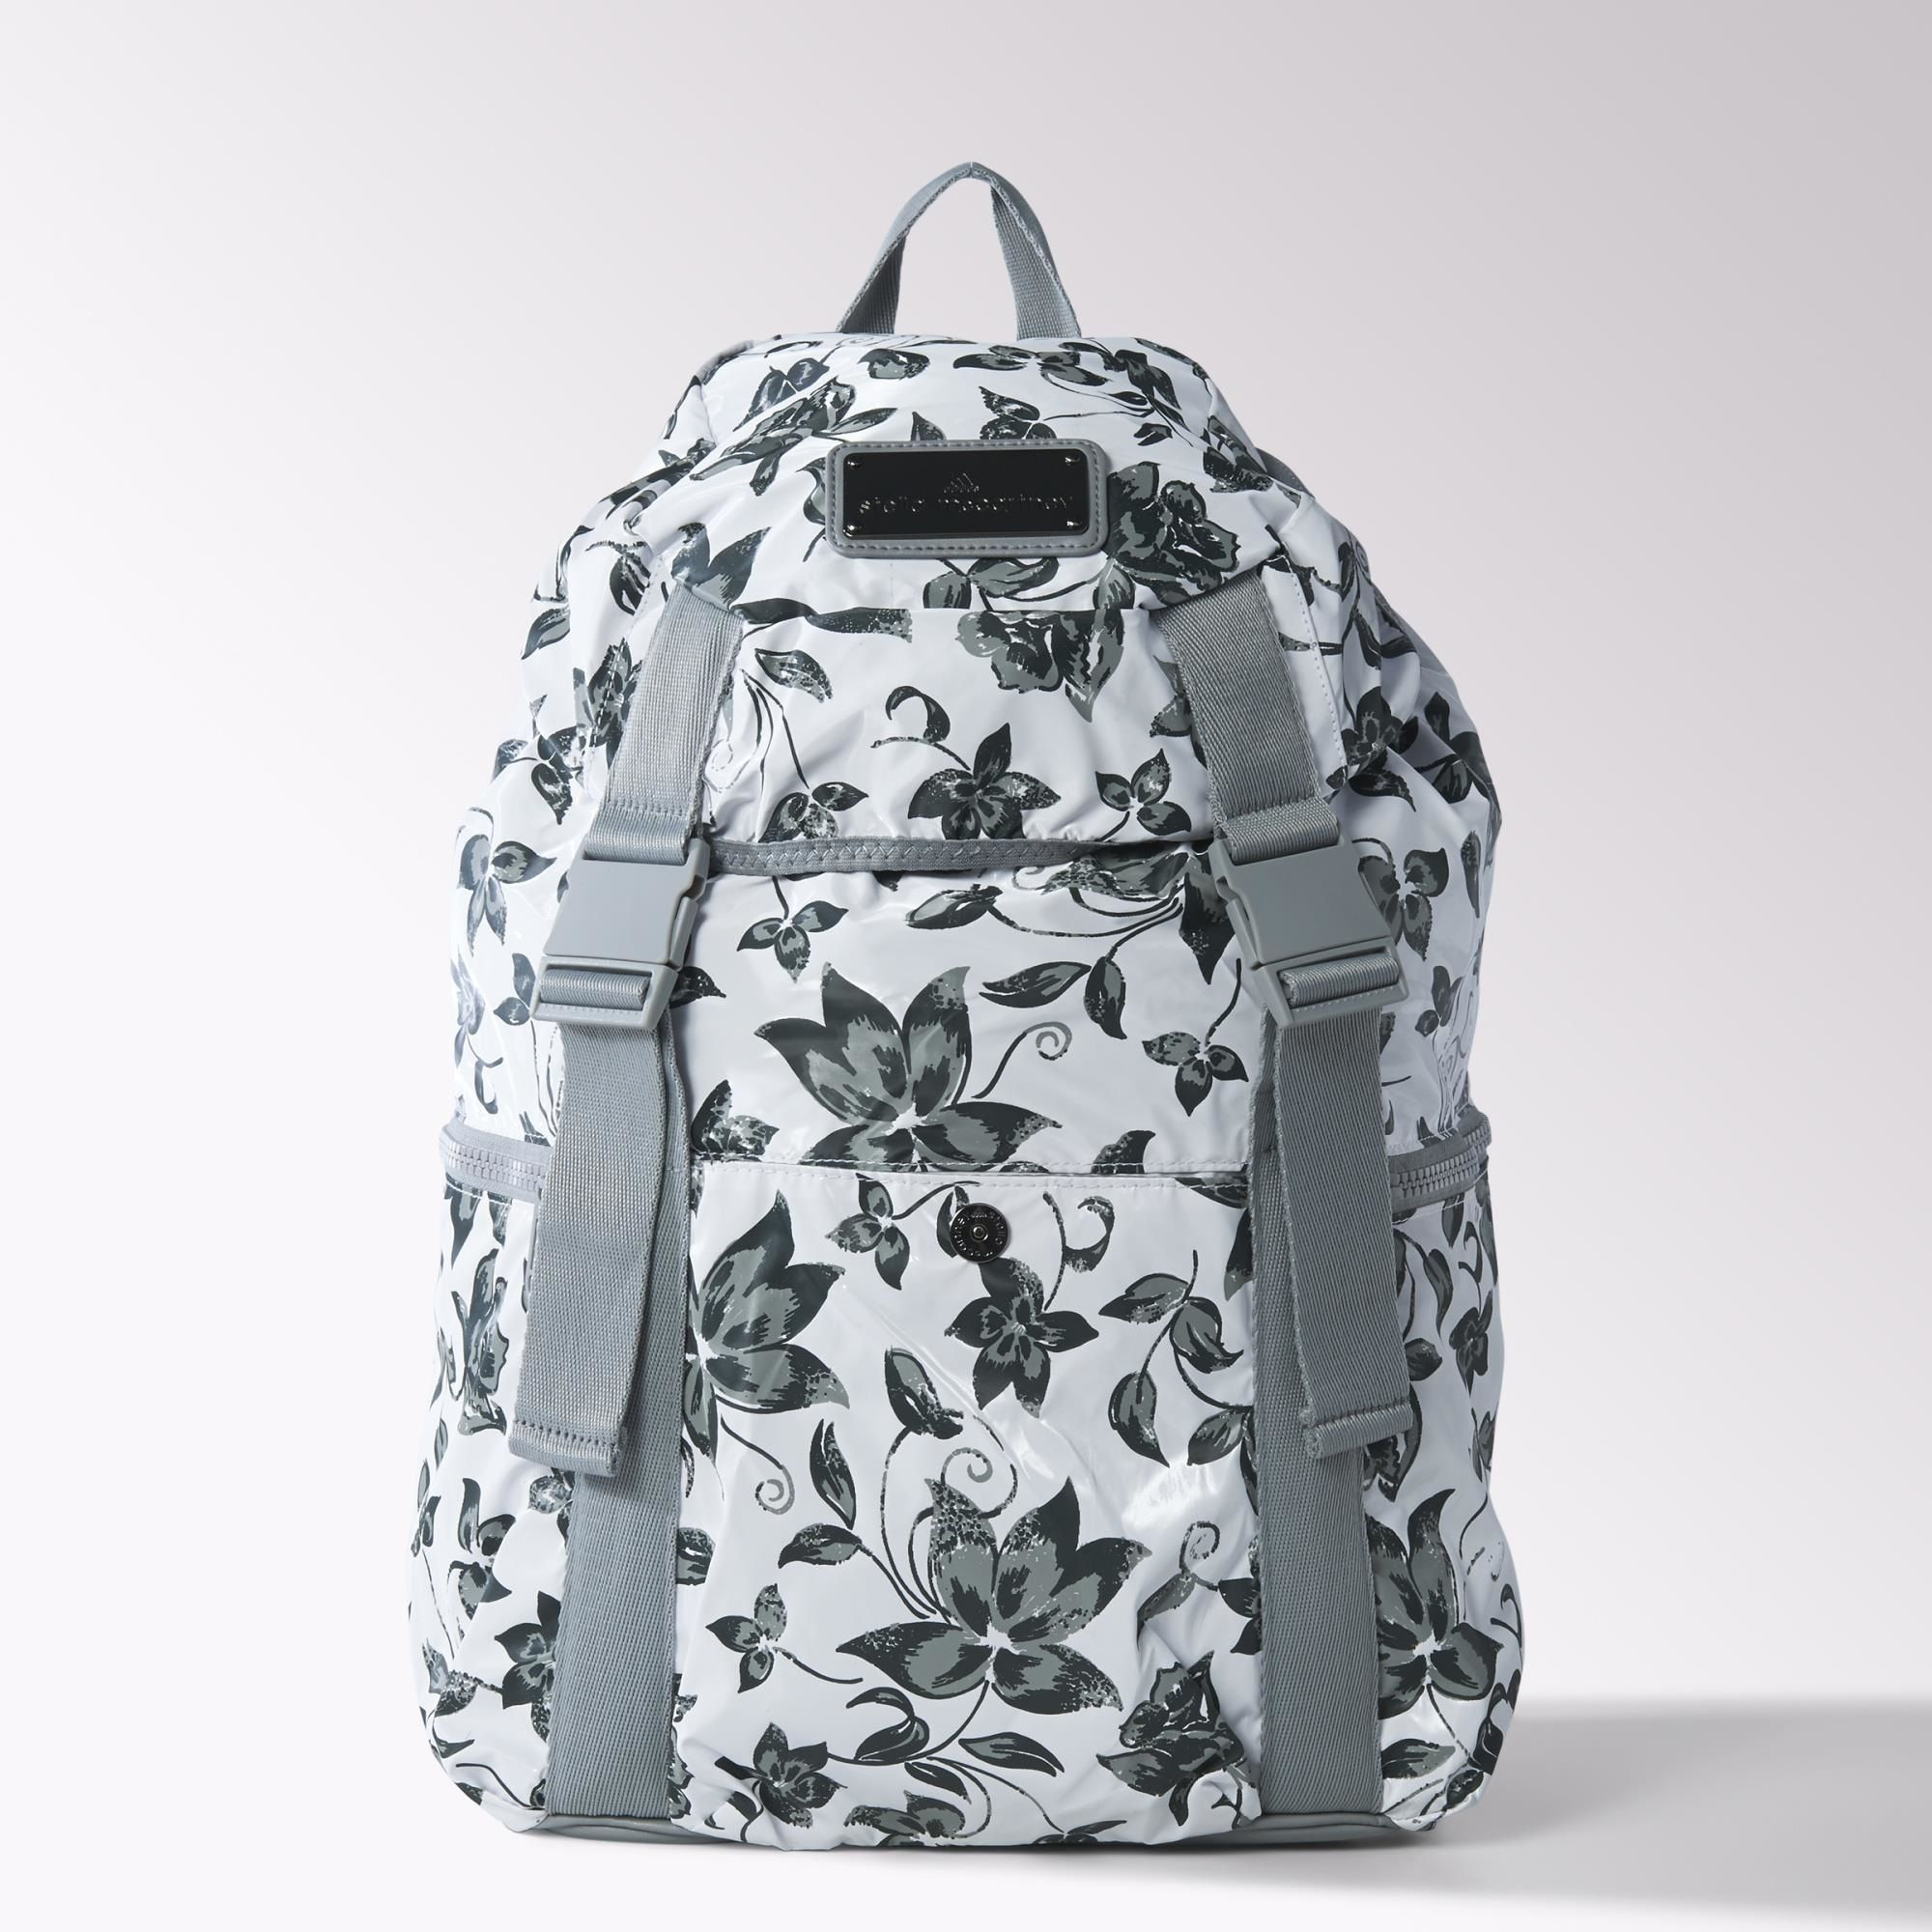 Roomy enough for a long weekend's worth of gear, the adidas by Stella McCartney Weekender Backpack is made in this season's allover floral print. Featuring buckle straps and extra side zip pockets.